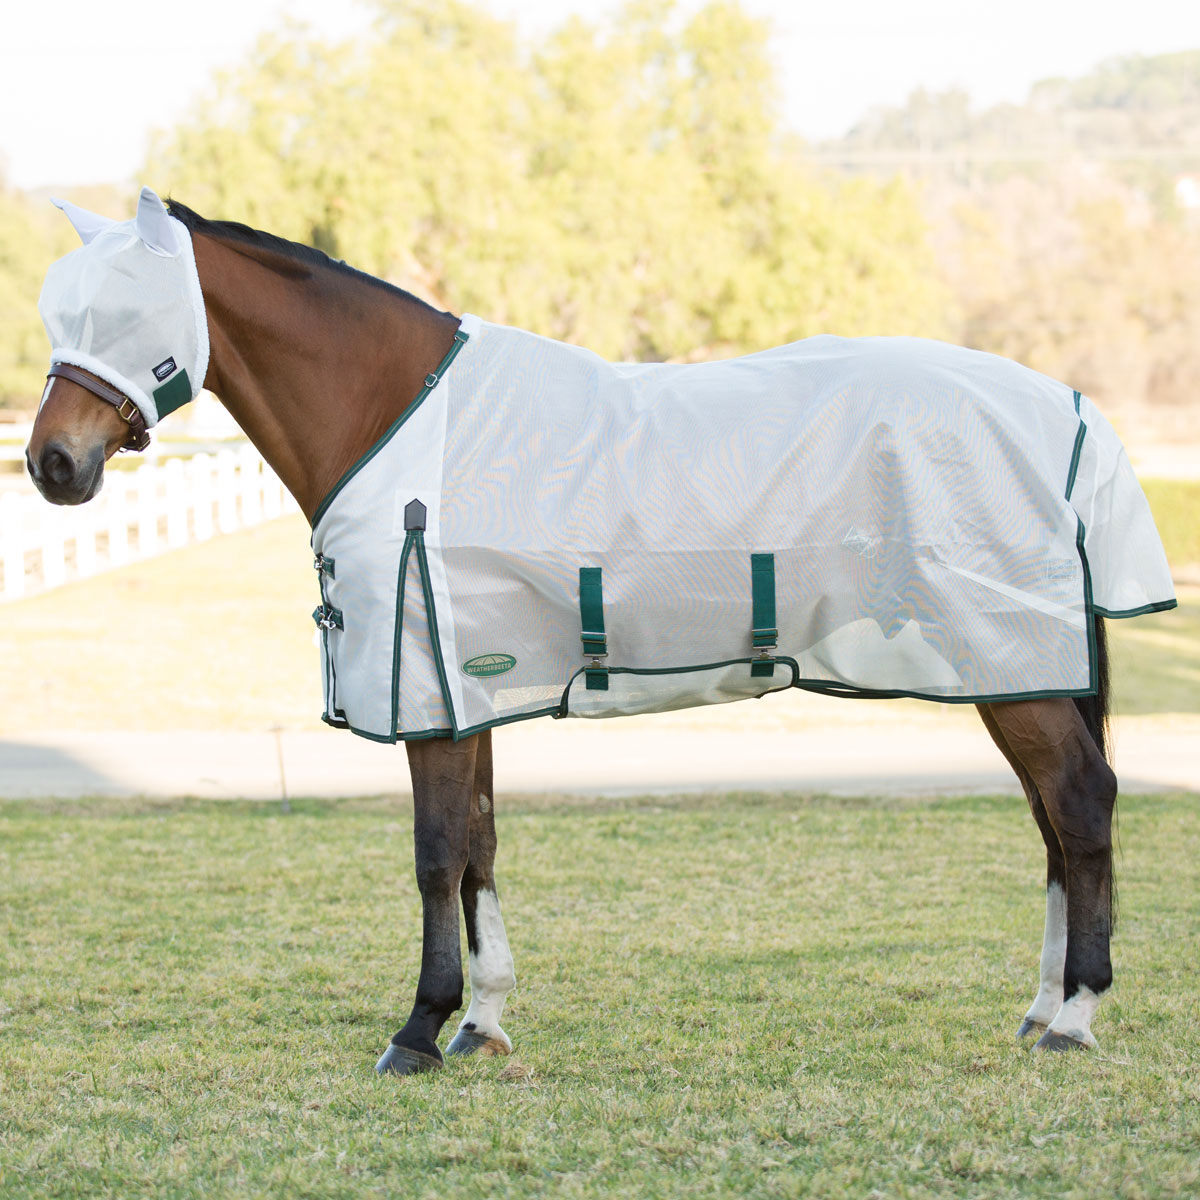 Ideal for Turnout Double Front Buckle Chest Design Stay Cool in The Sun Criss-Cross Surcingle Dura-Tech Ripstop Nylon Mesh Horse Fly Sheet Various Sizes /& Colors